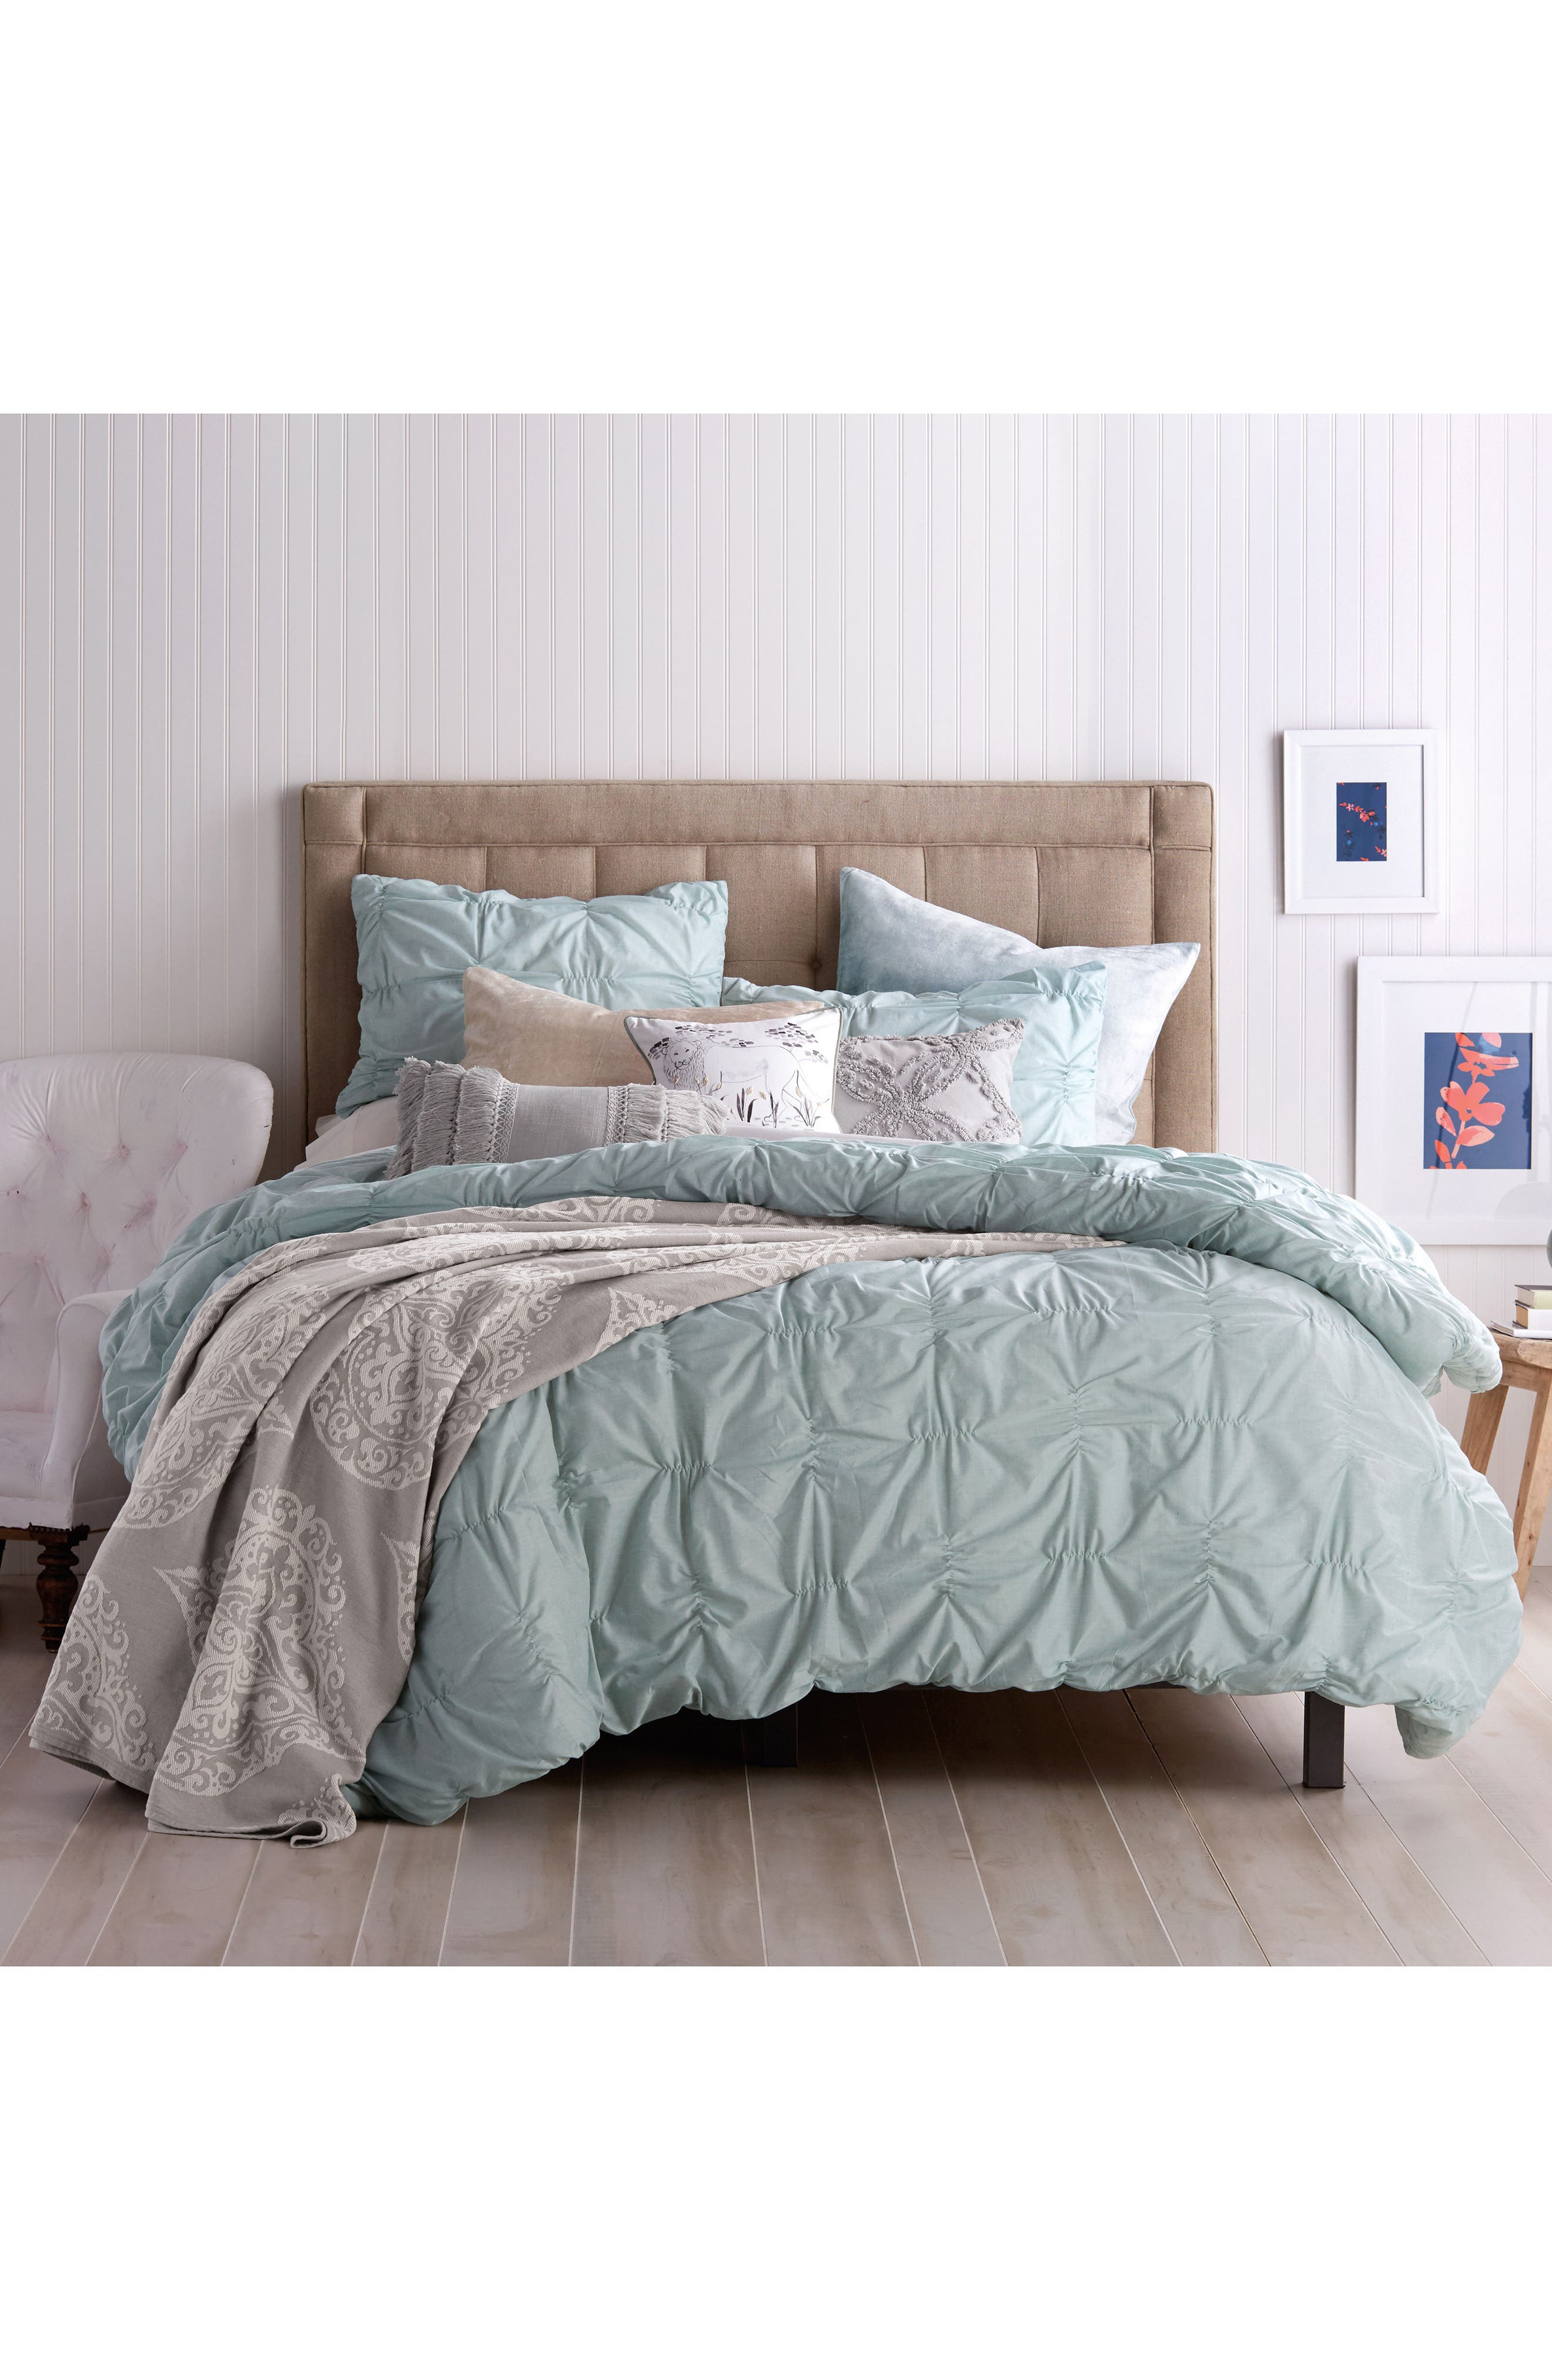 Peri Home Check Smocked Comforter  Sham Set Size FullQueen  Bluegreen